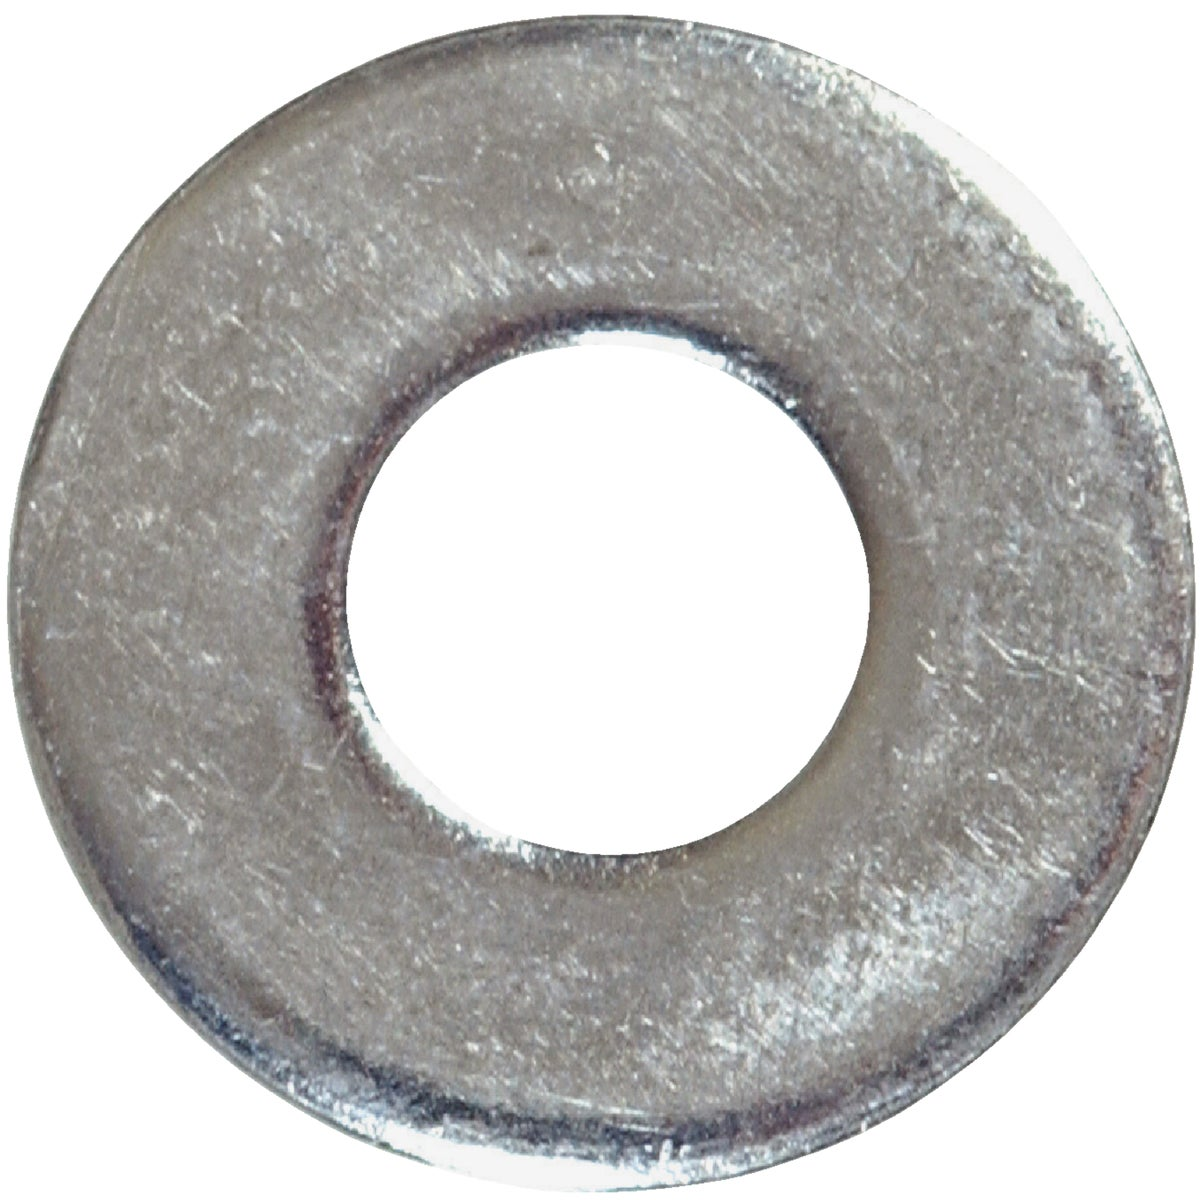 "5LB 3/8"" USS FLT WASHER - 270012 by Hillman Fastener"